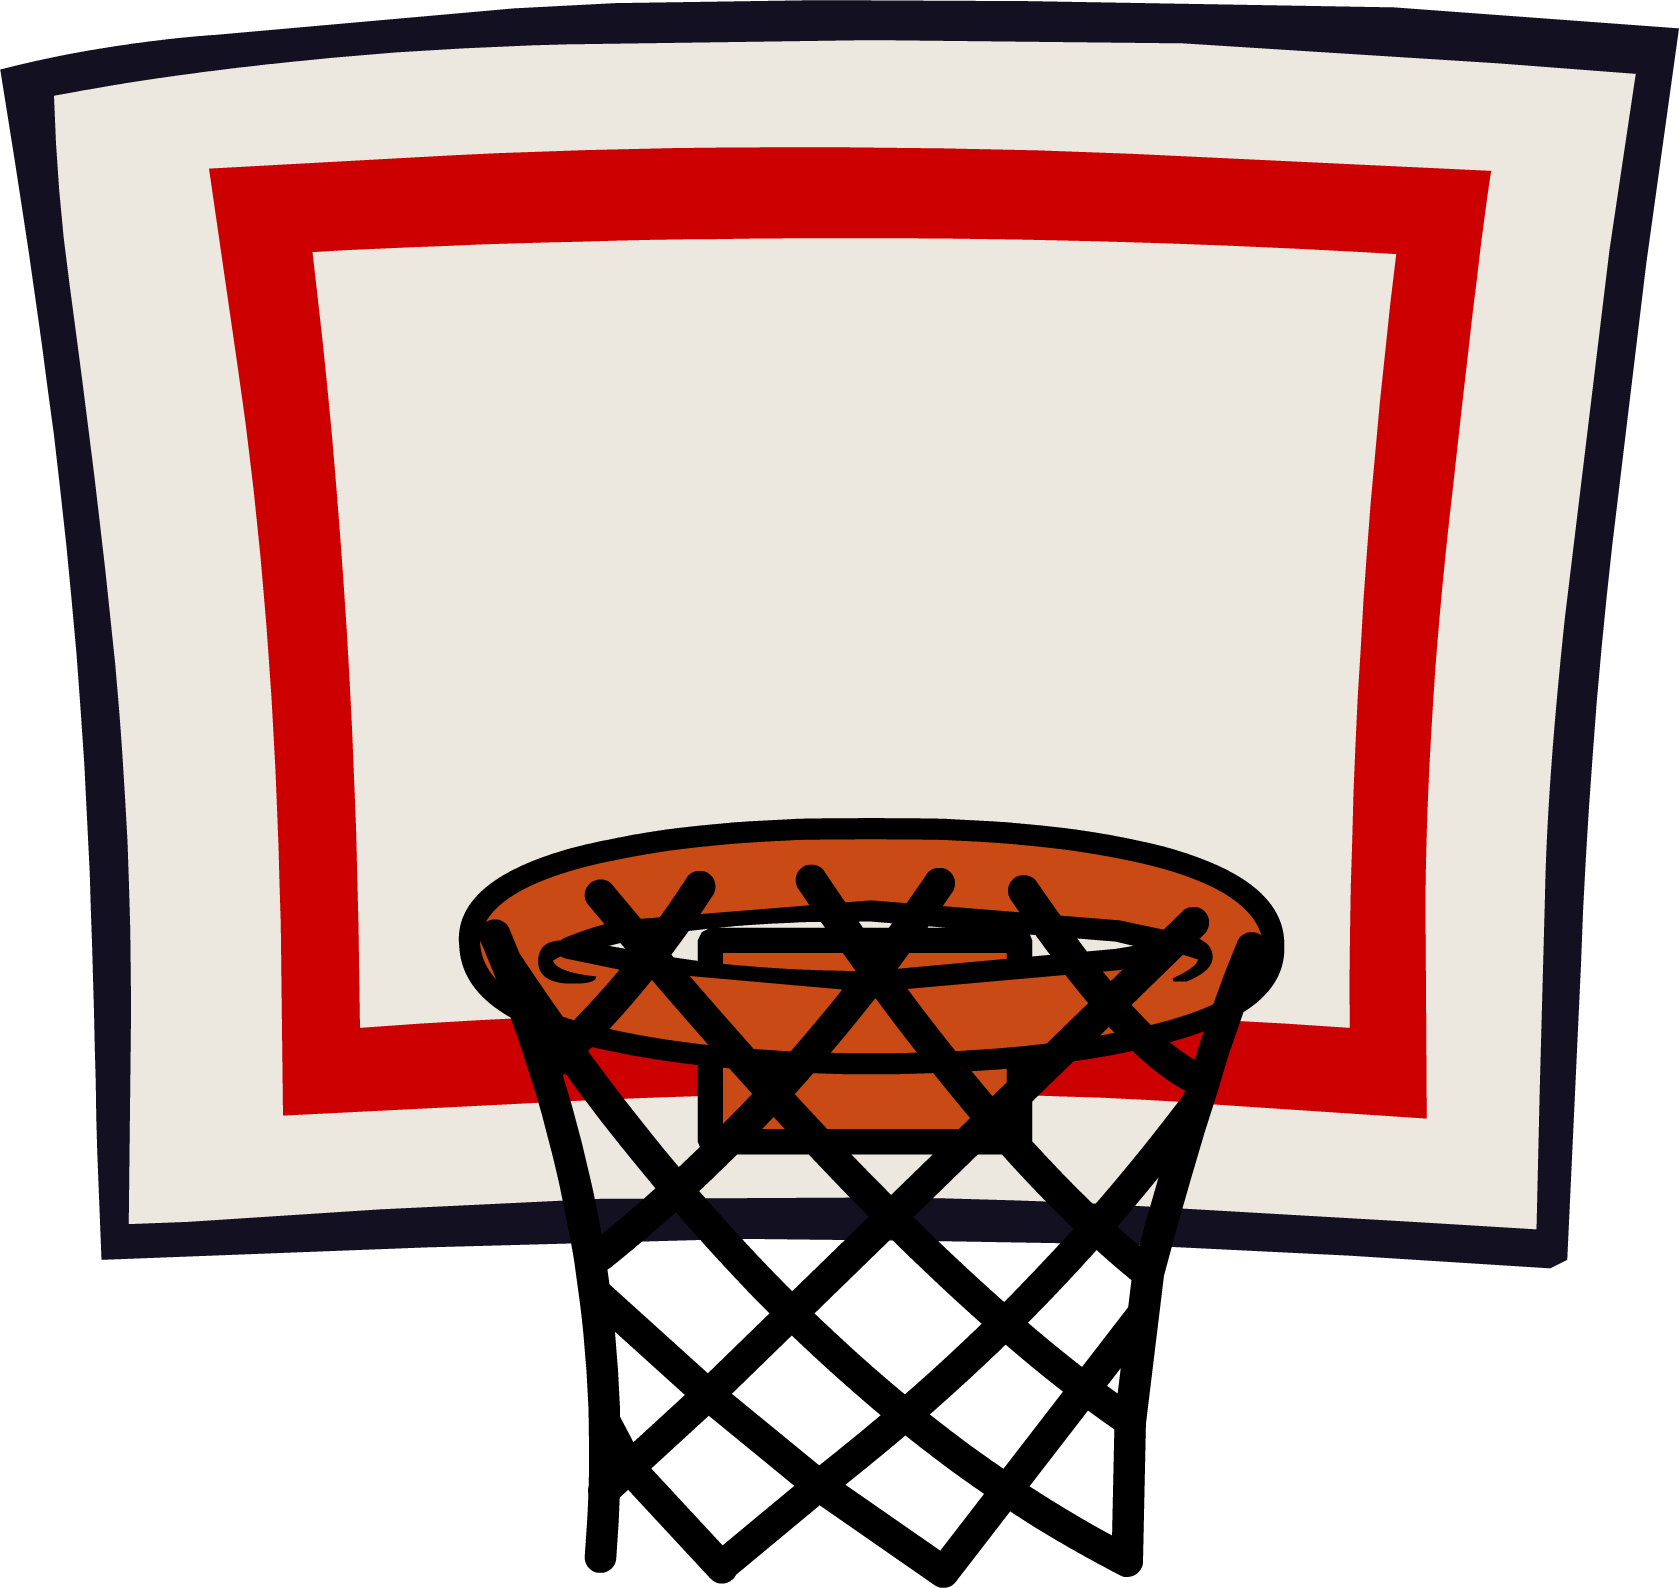 Basketball goal clipart - .